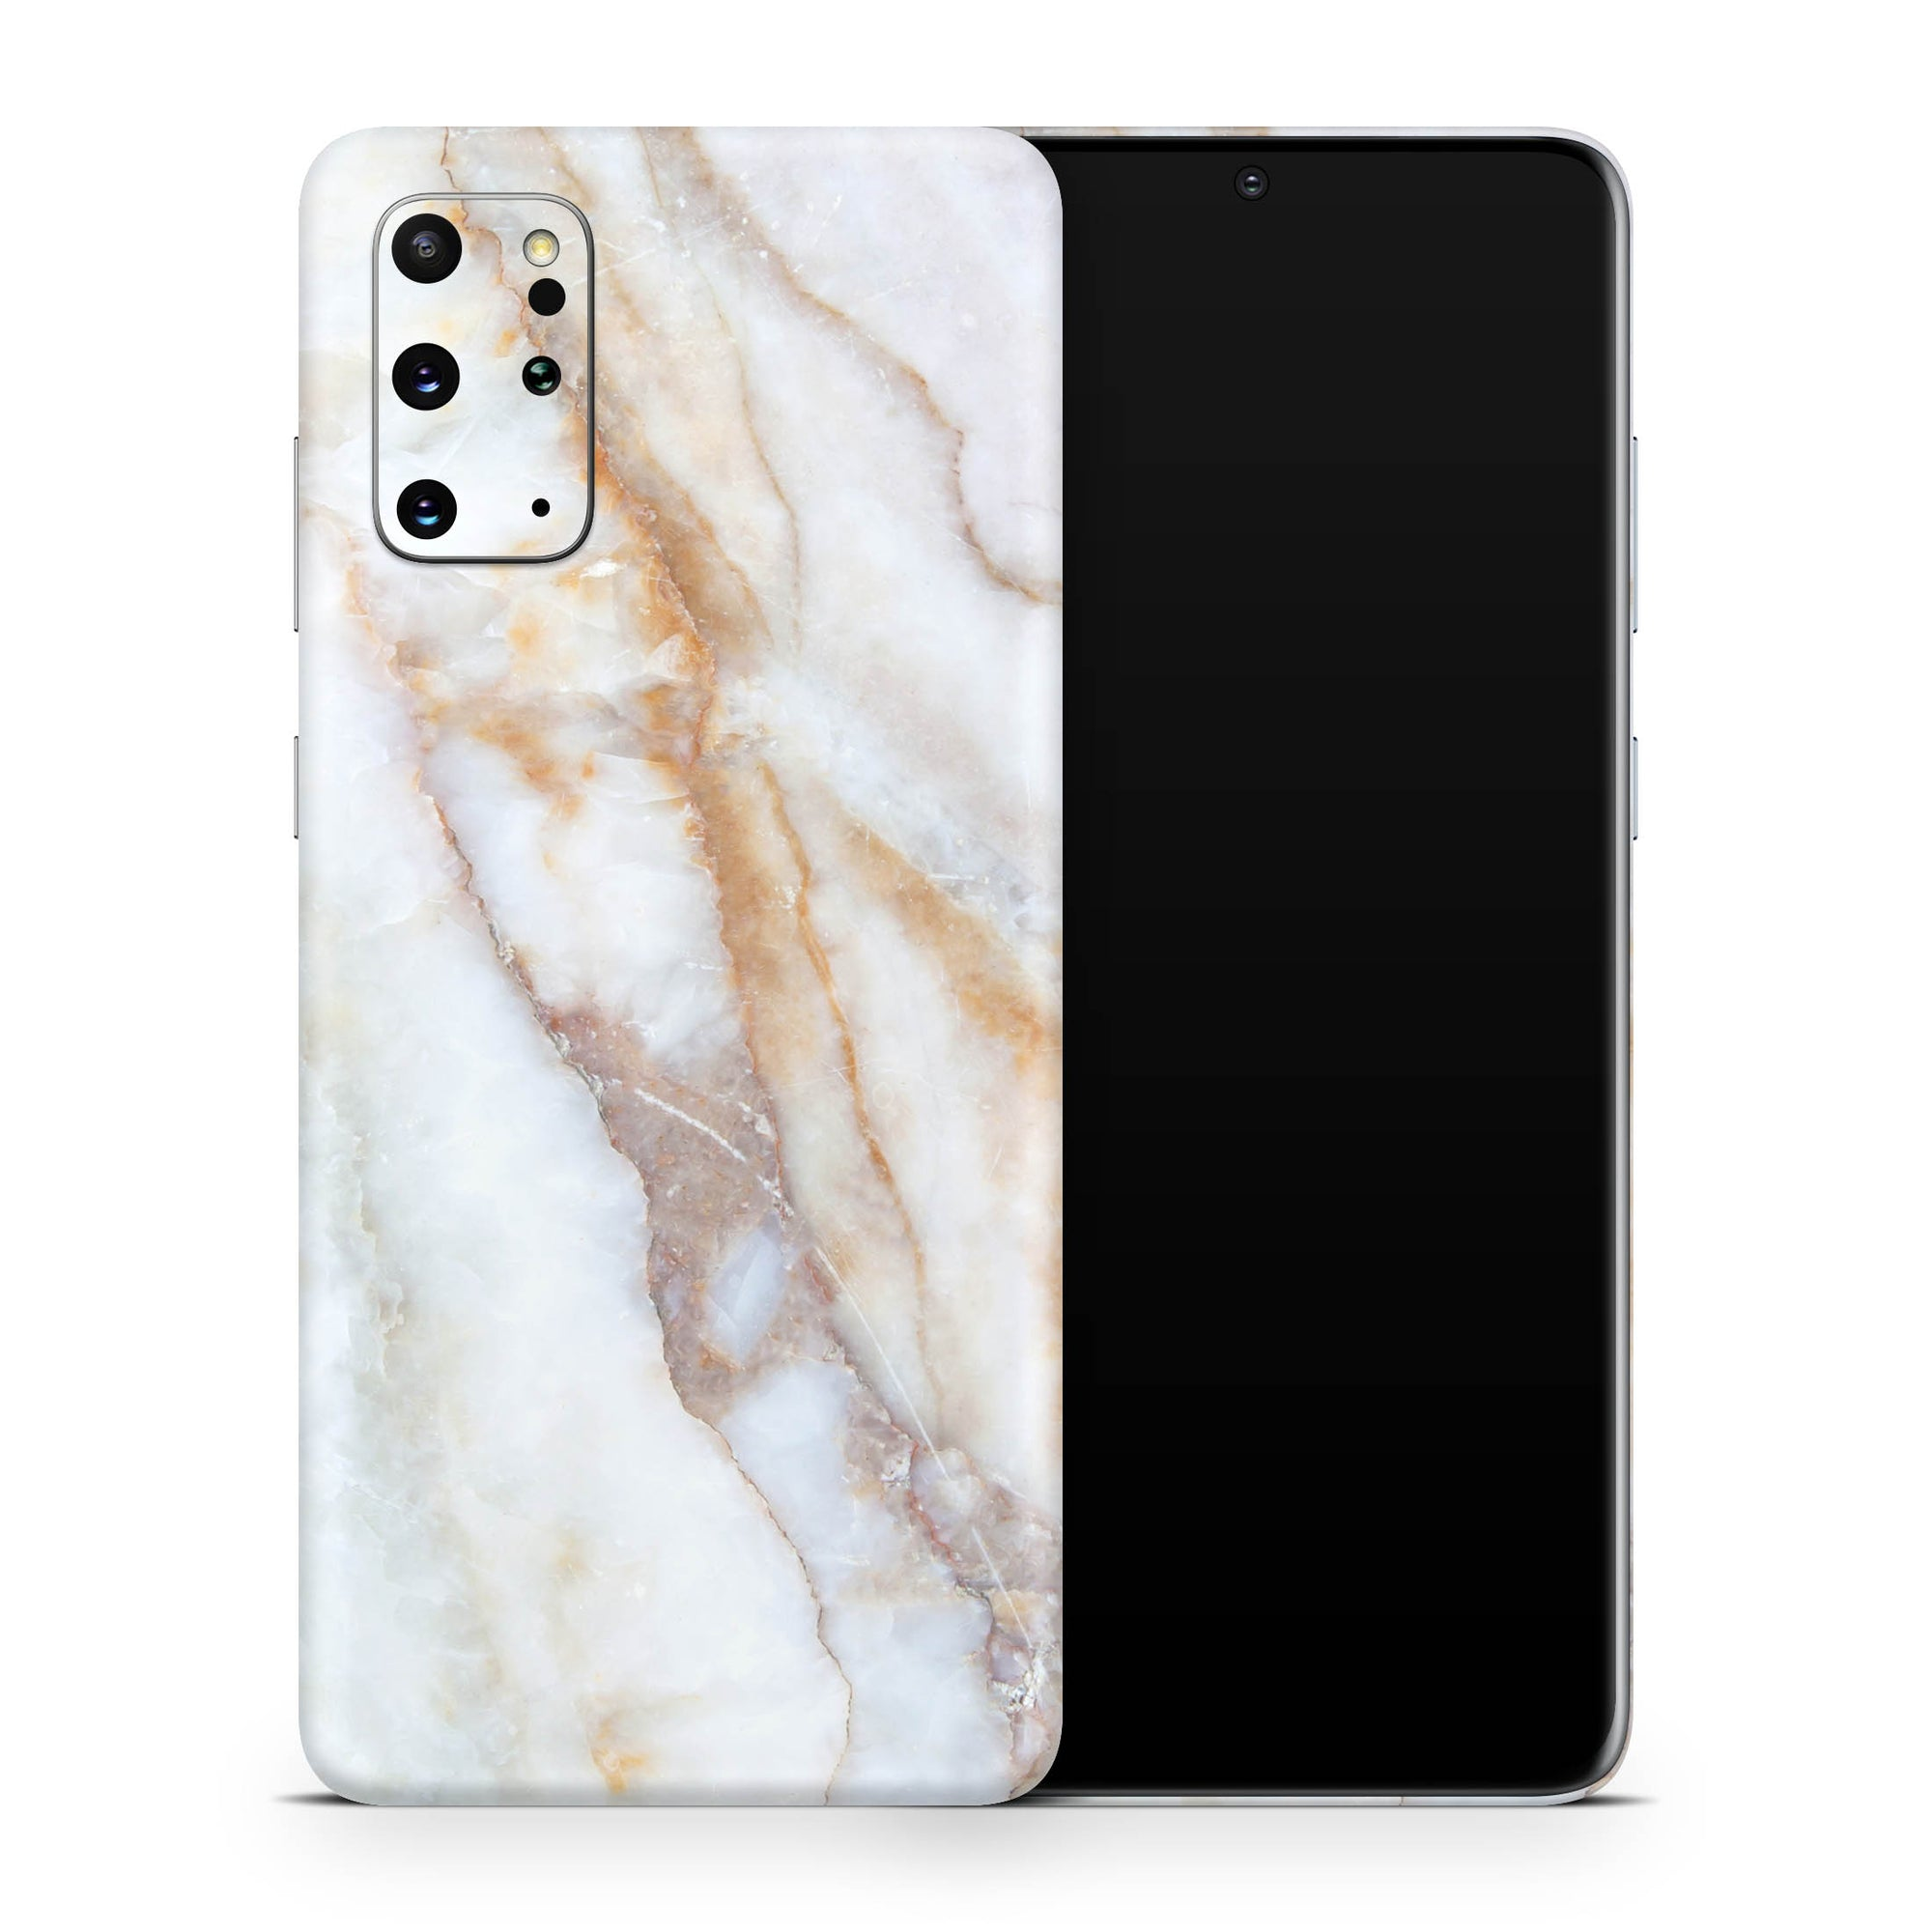 Vanilla Marble Galaxy S20 Plus Skin + Case-Uniqfind